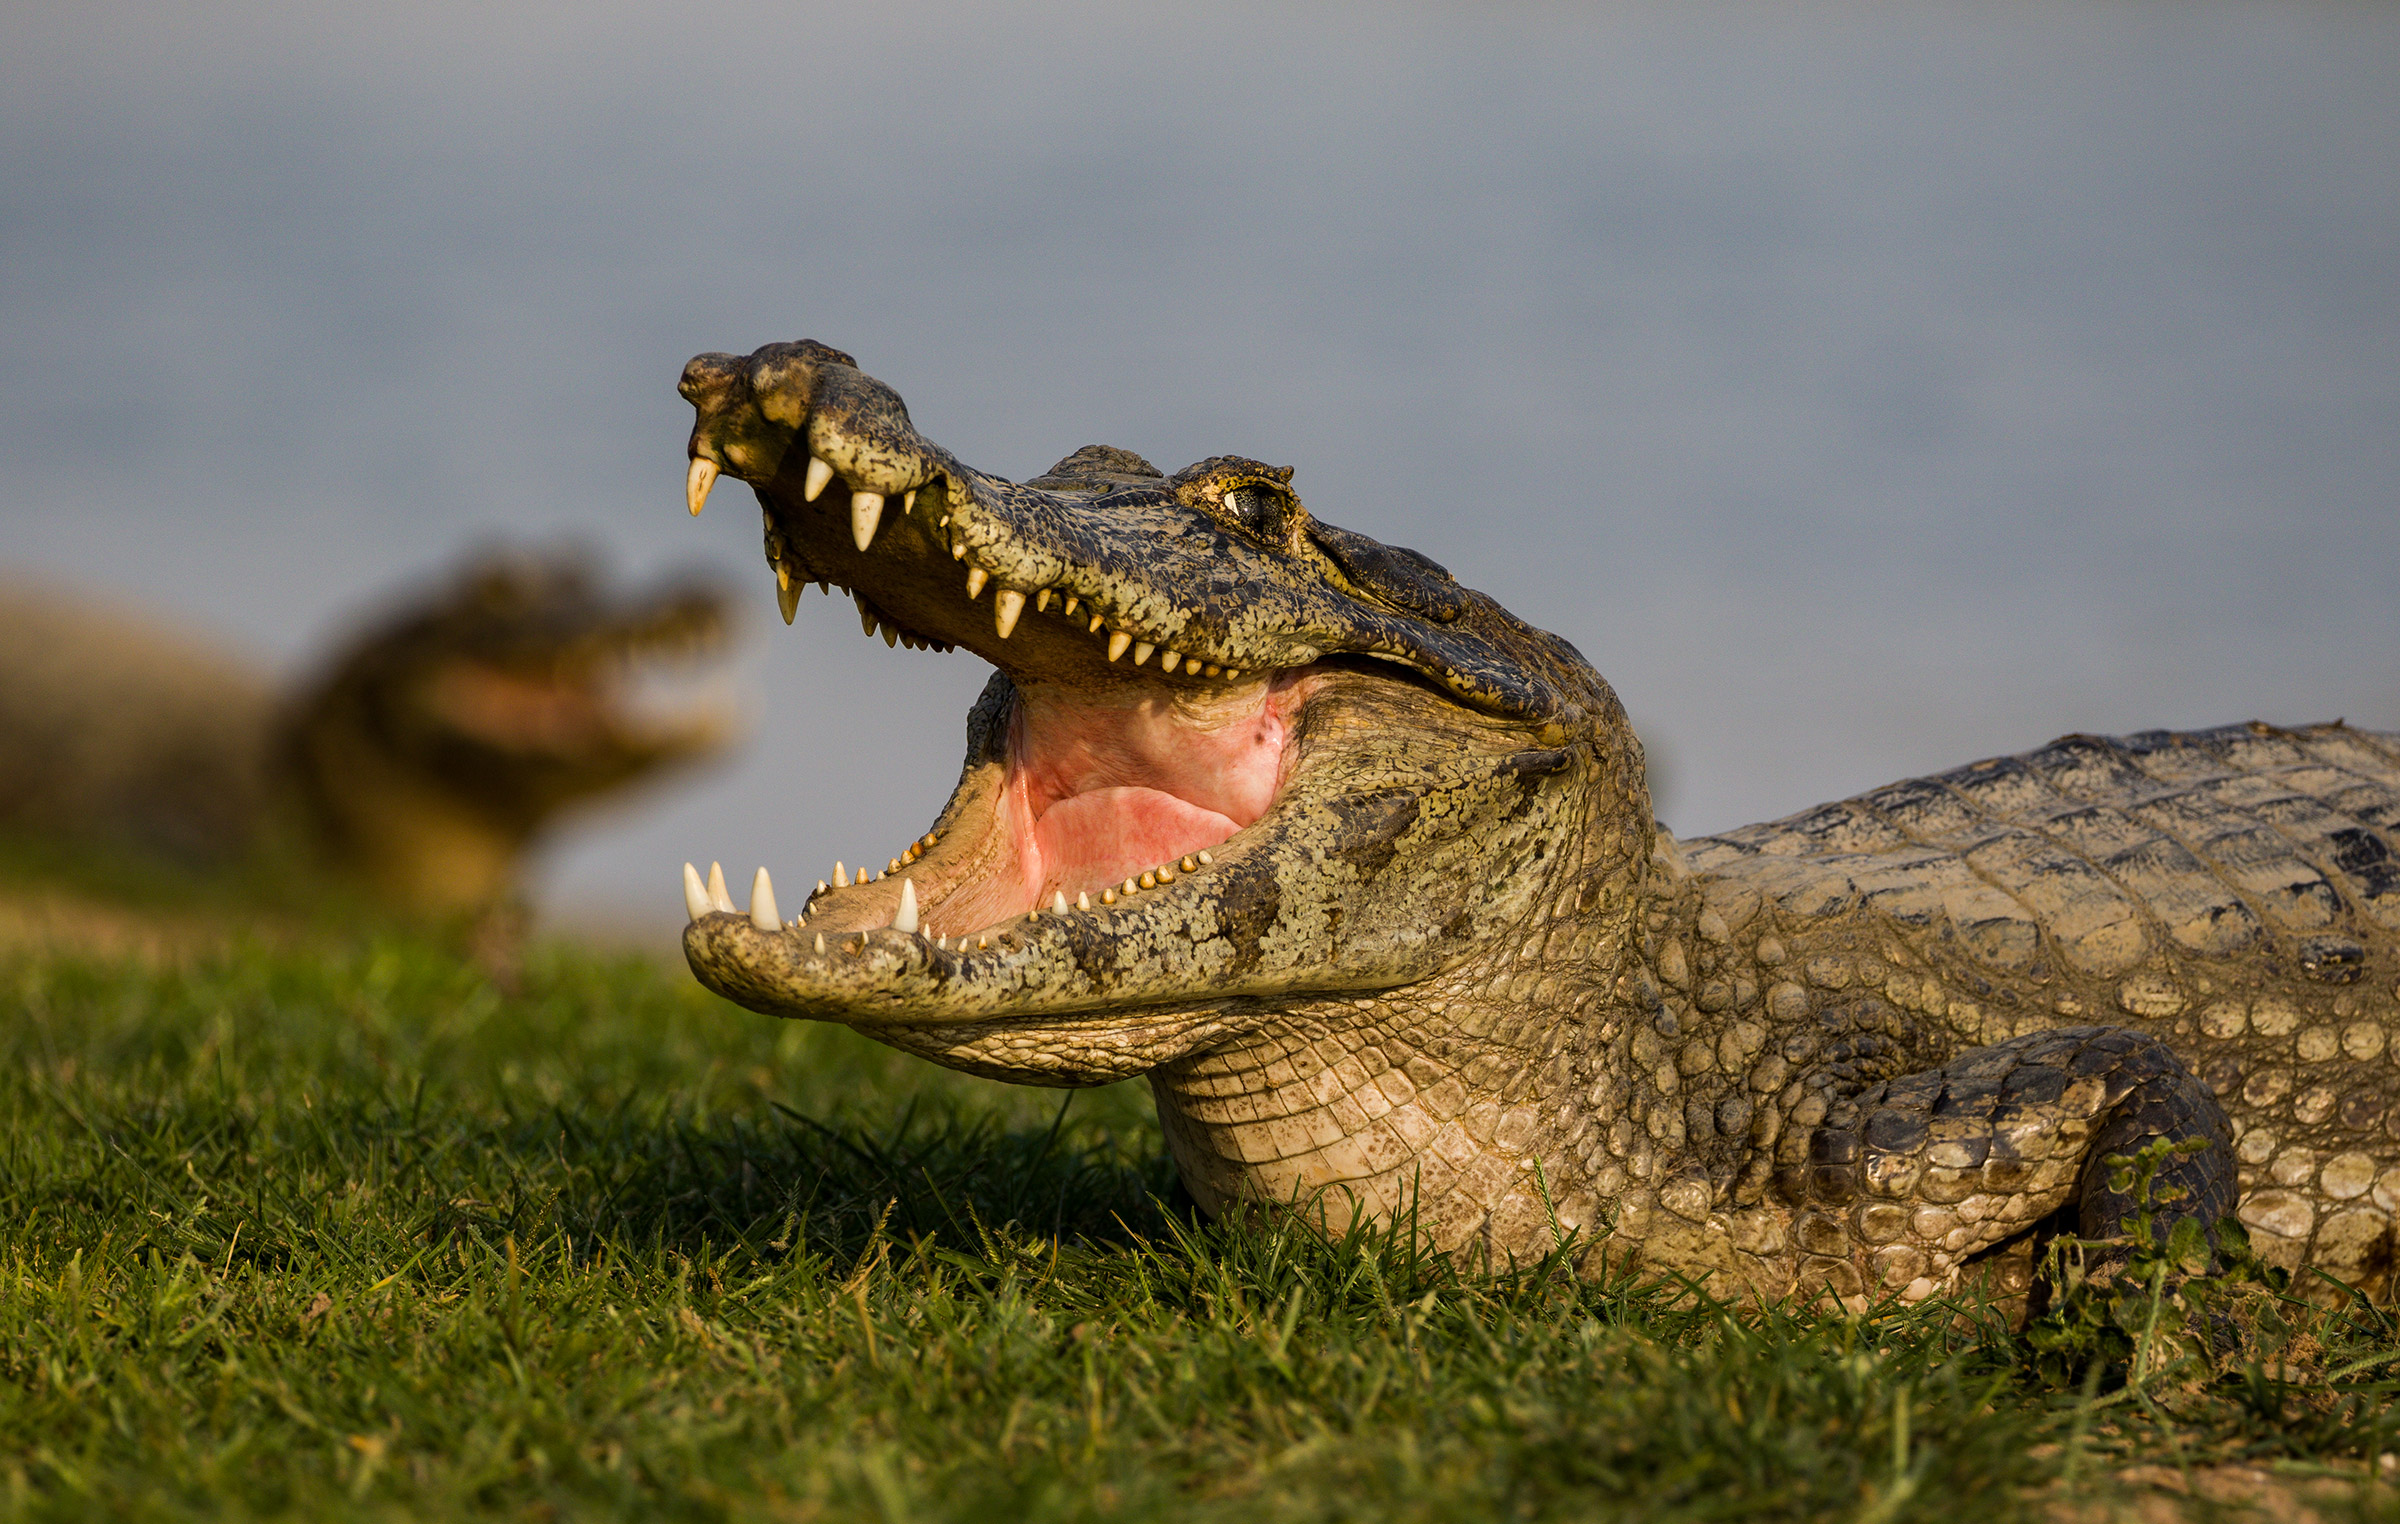 Face to face with the alligator...